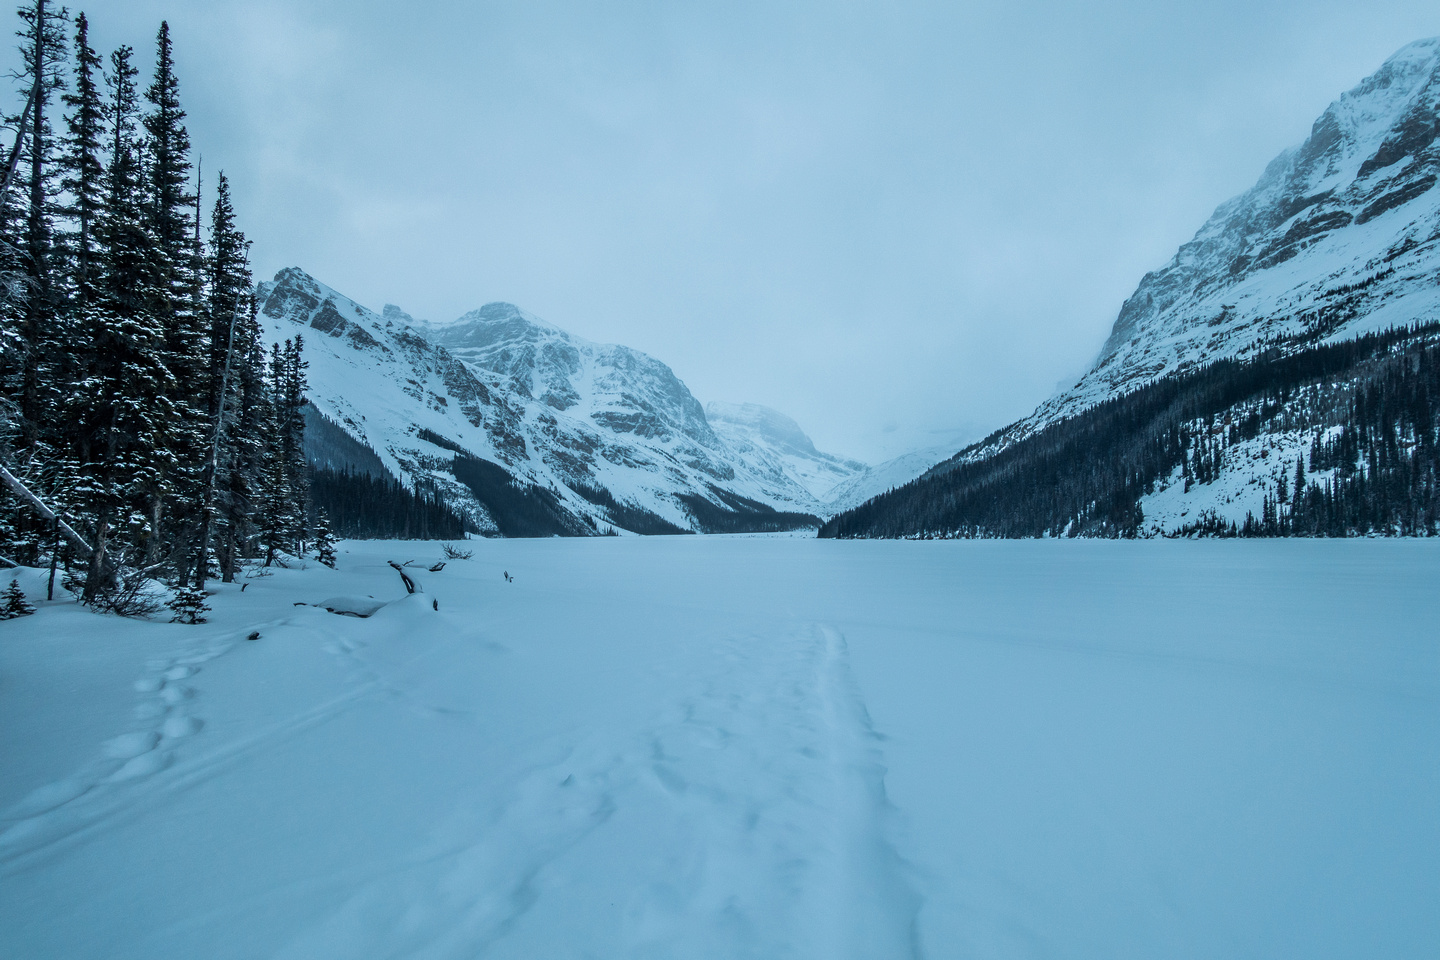 Peyto lake stretches out before me as I exit the trees.